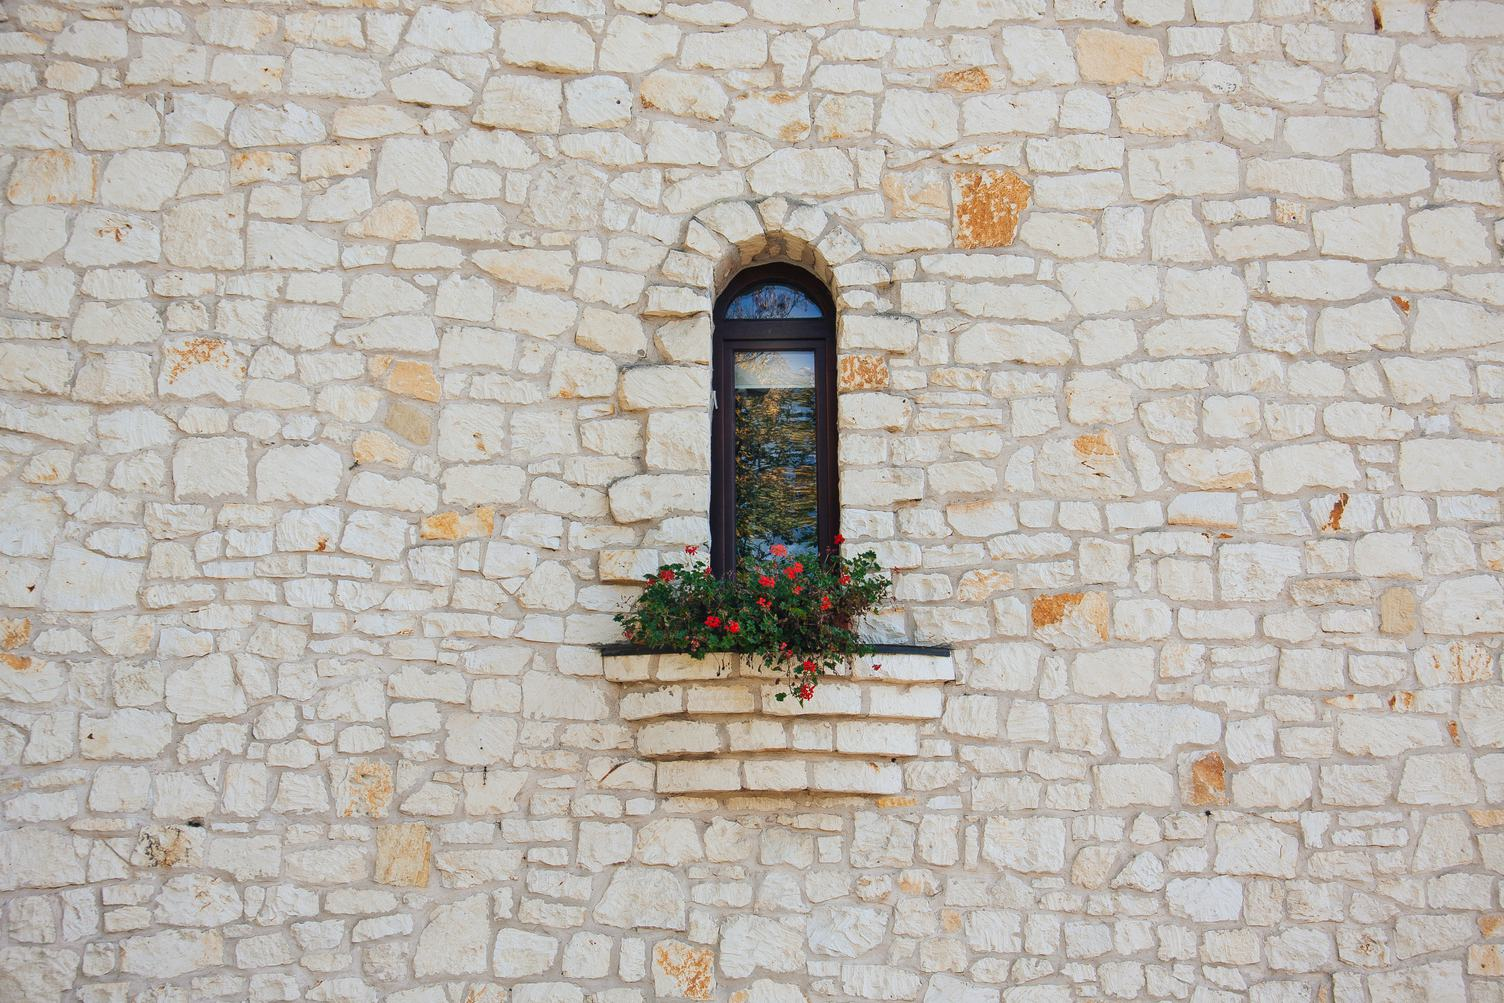 Stone Wall and Window with Red Geranium